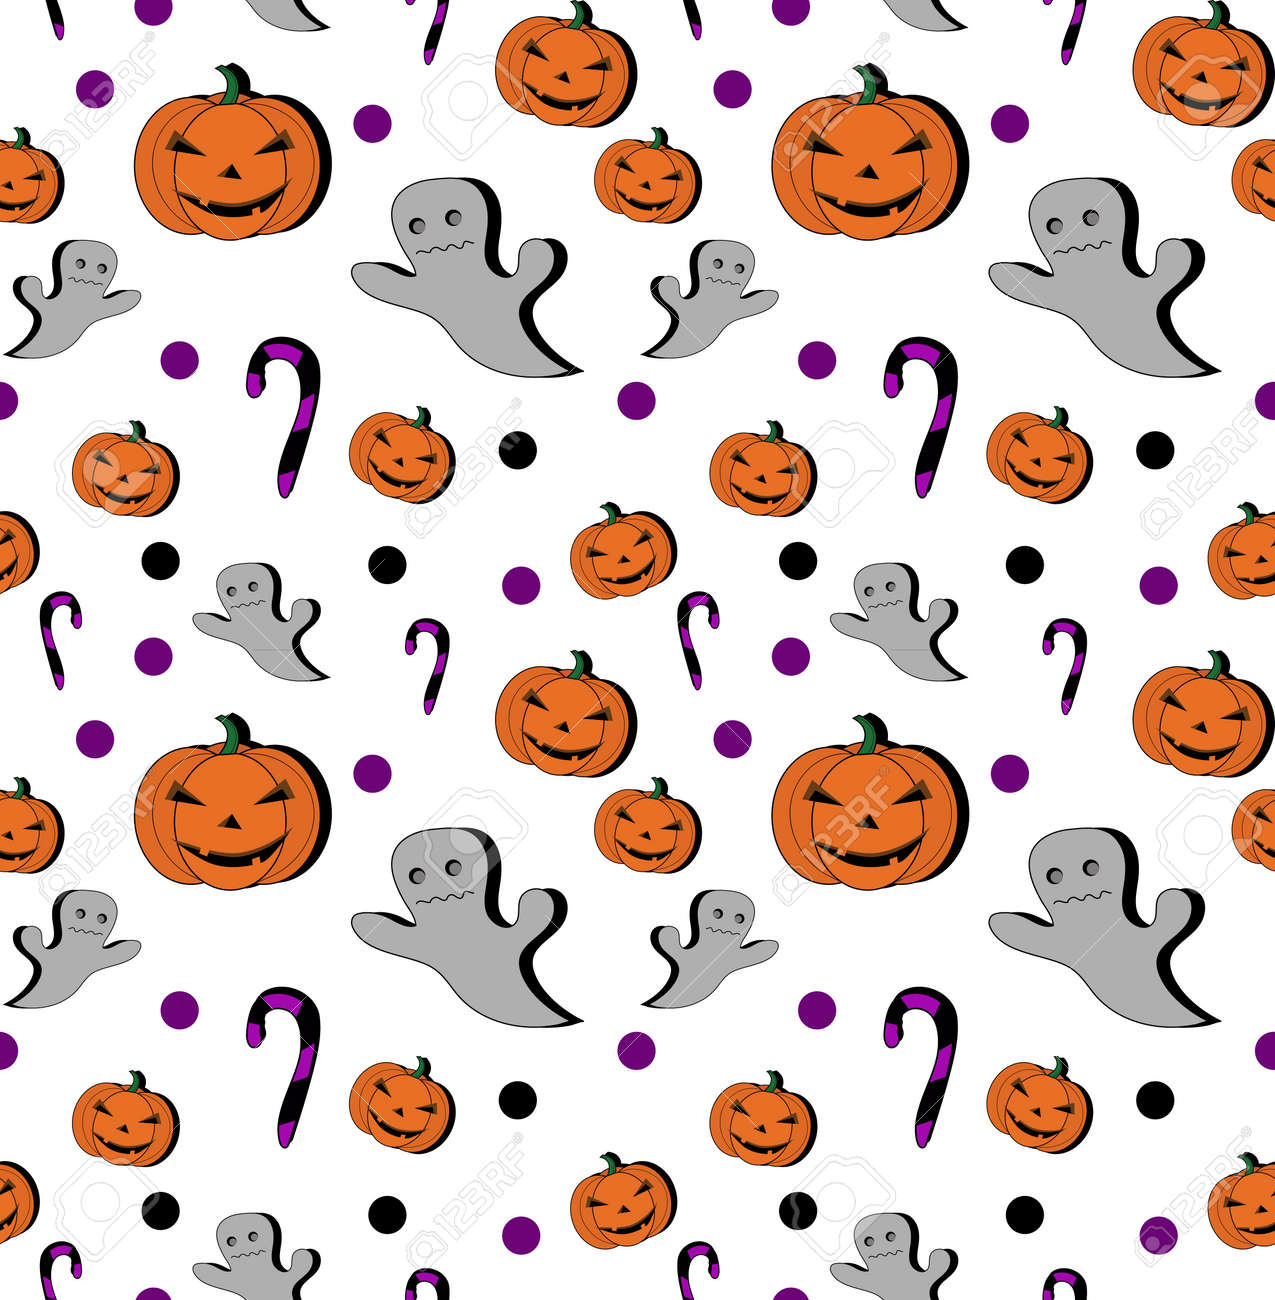 Seamless Pattern Pumpkin Cartoon For Halloween Card Wallpaper Royalty Free Cliparts Vectors And Stock Illustration Image 65042888